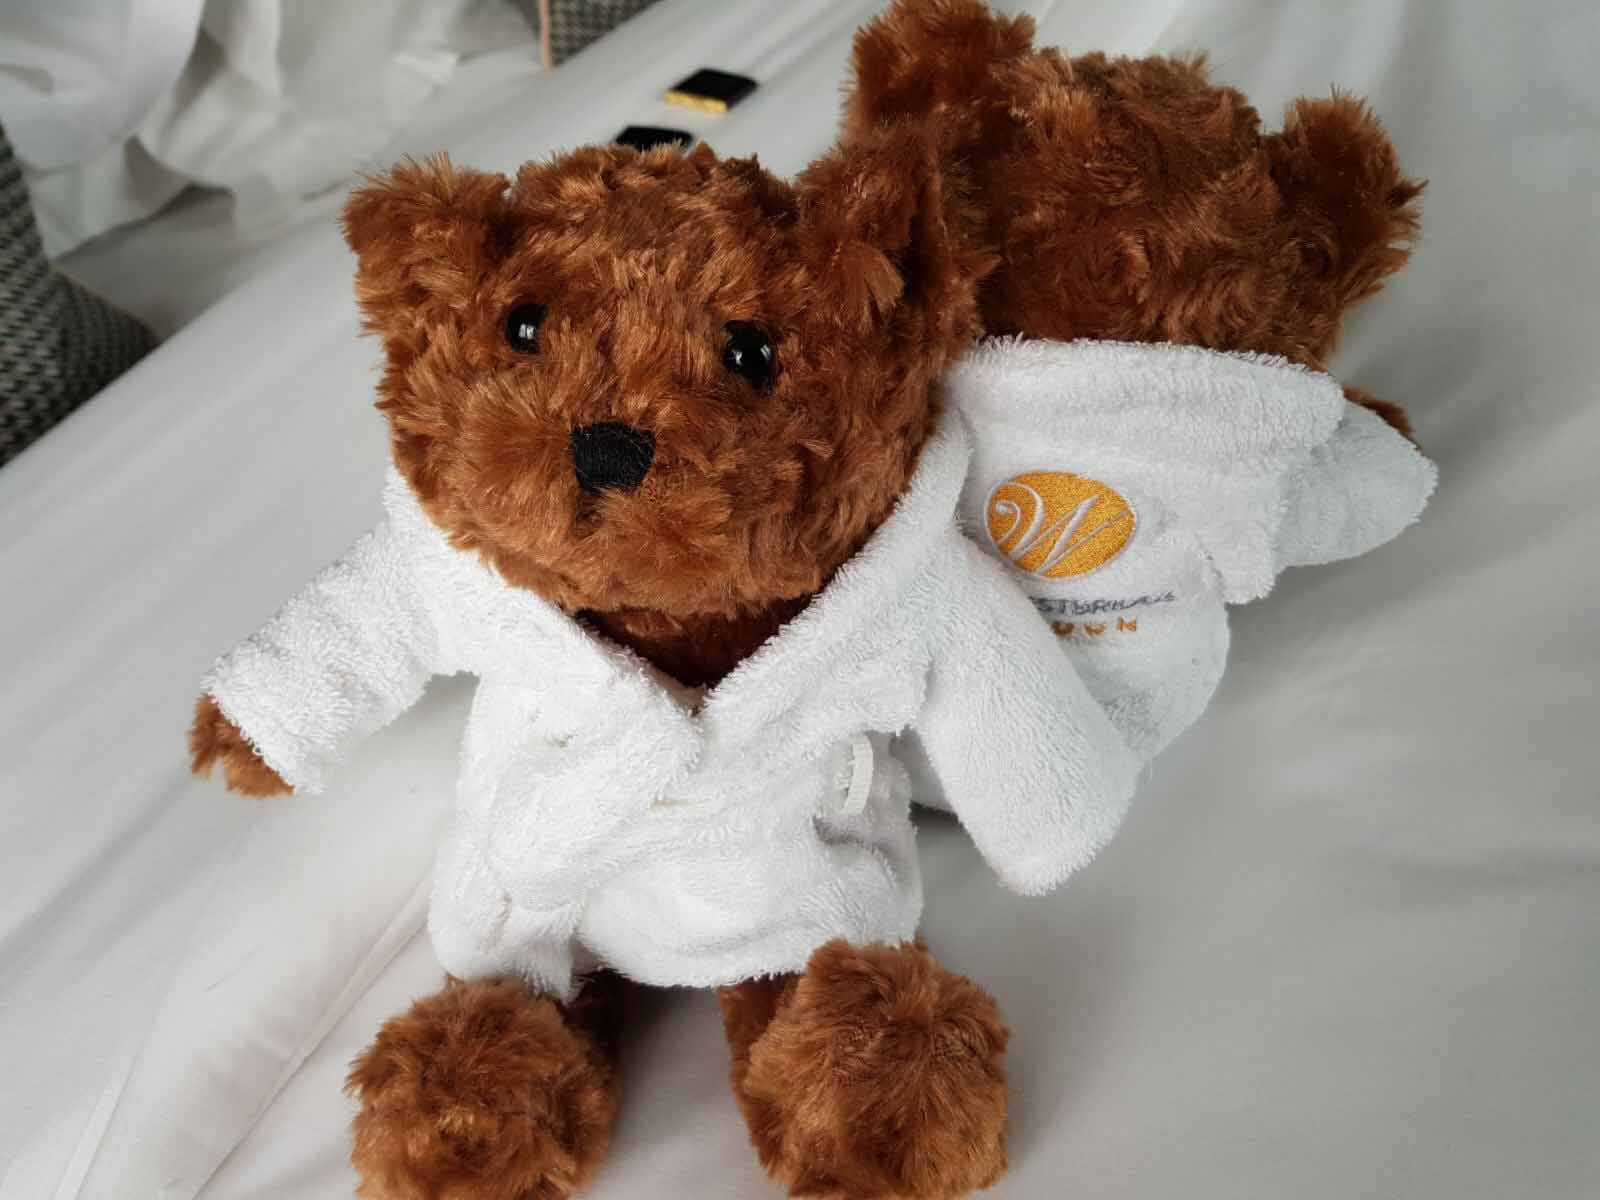 Teddy Bear at The Westbridge Hotel